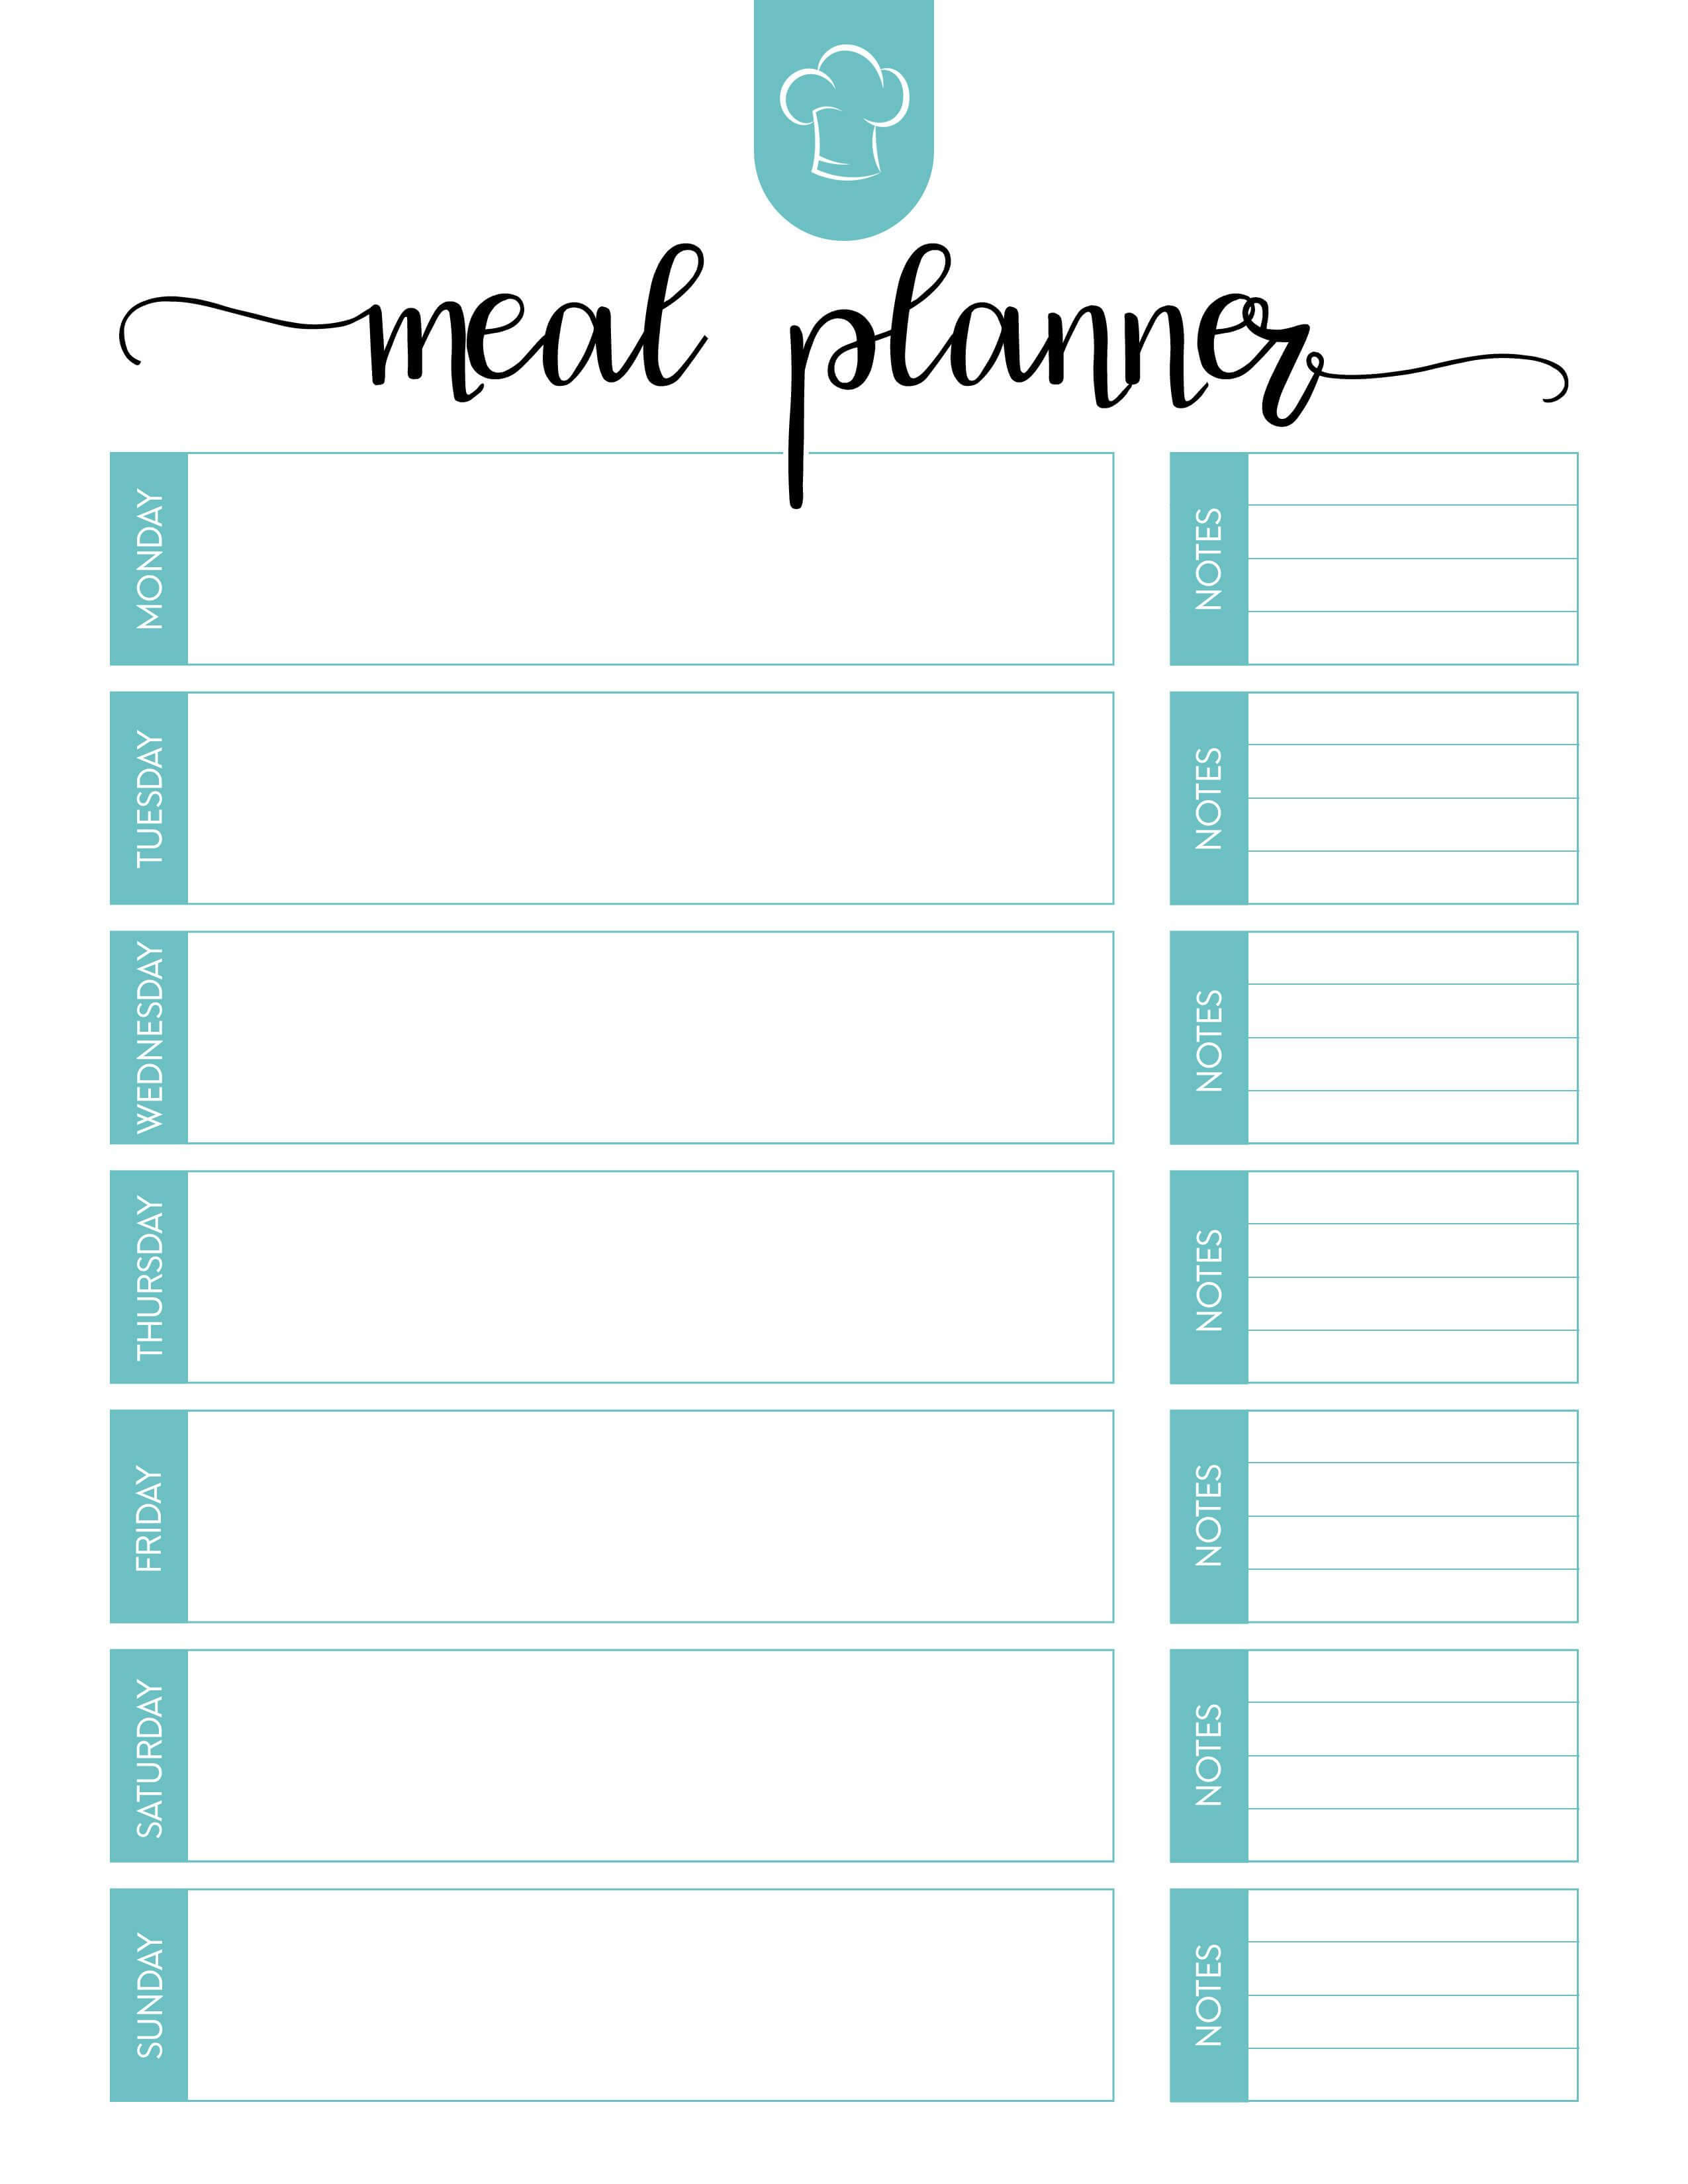 005 Free Menu Plan Template Unique Ideas Meal Pdf Planning inside Menu Planning Template Word